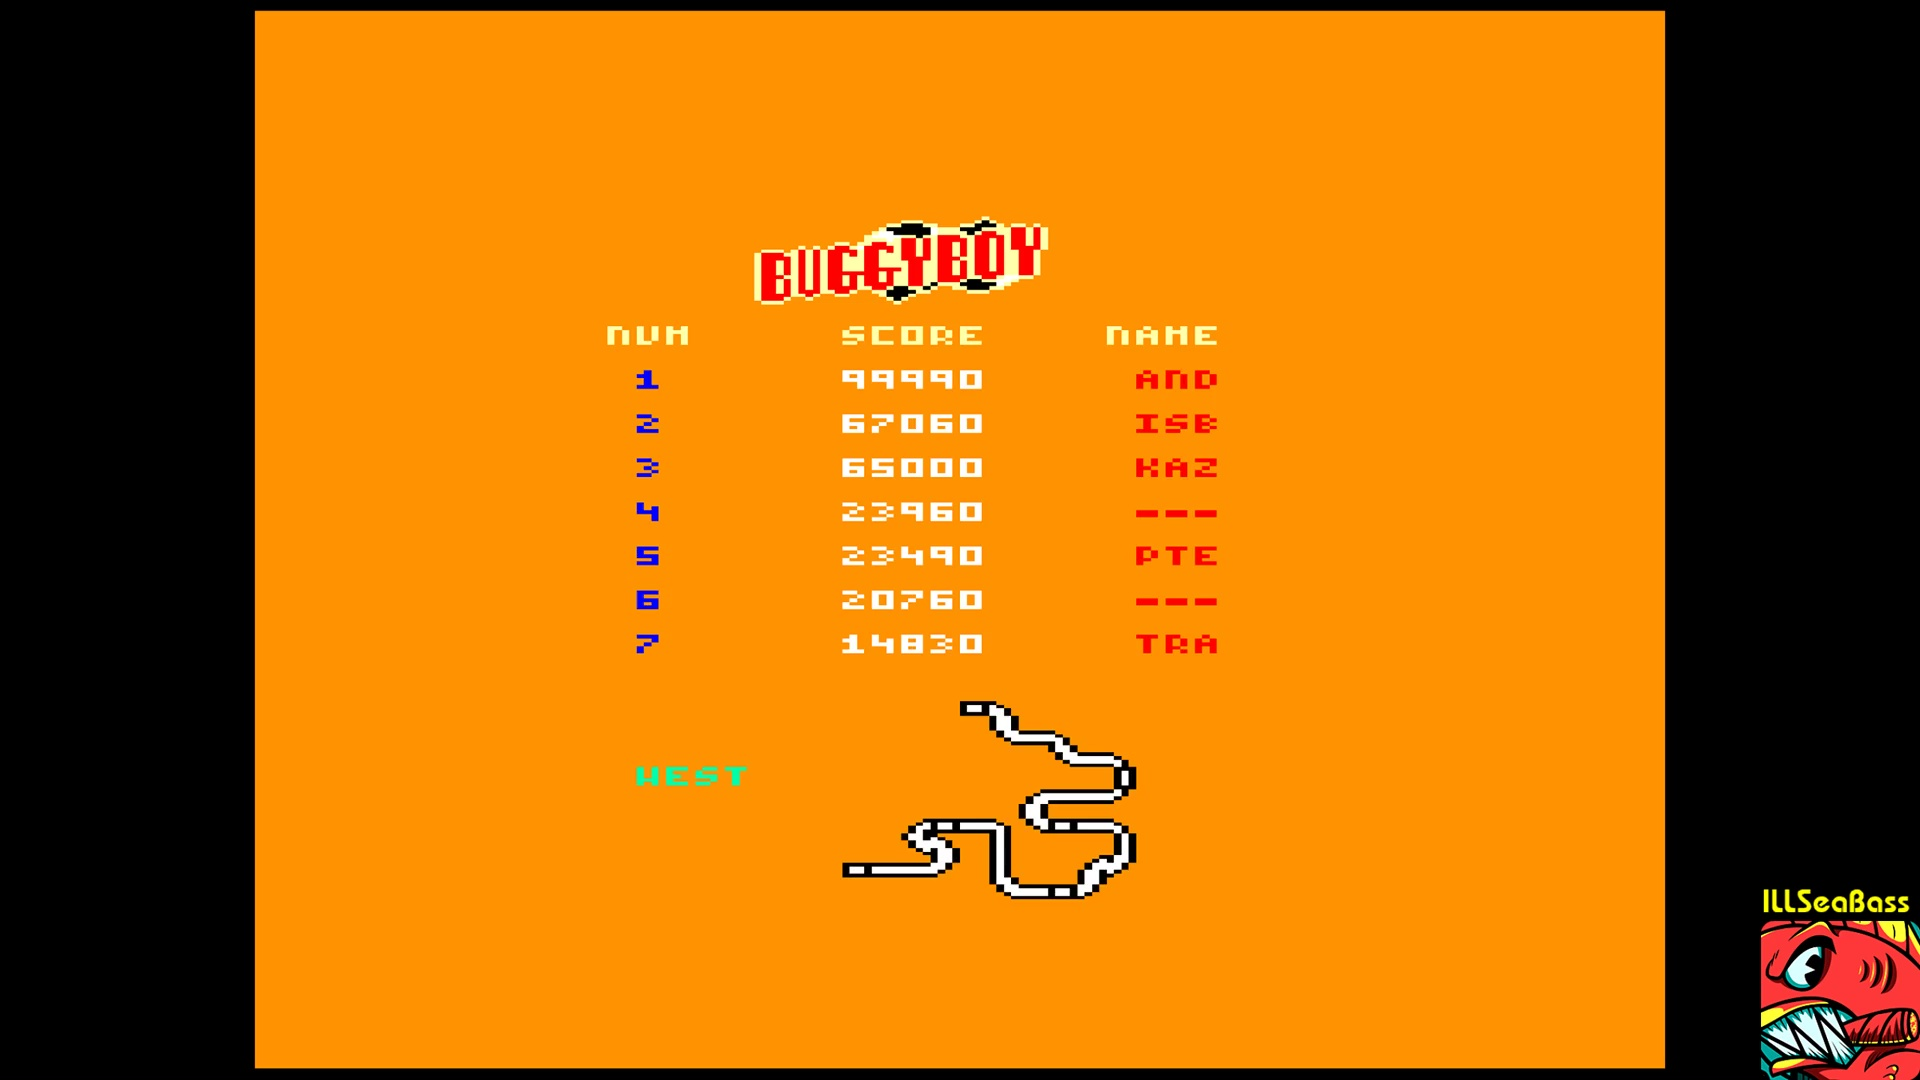 ILLSeaBass: Buggy Boy [West] (Amstrad CPC Emulated) 67,060 points on 2017-11-07 00:22:40